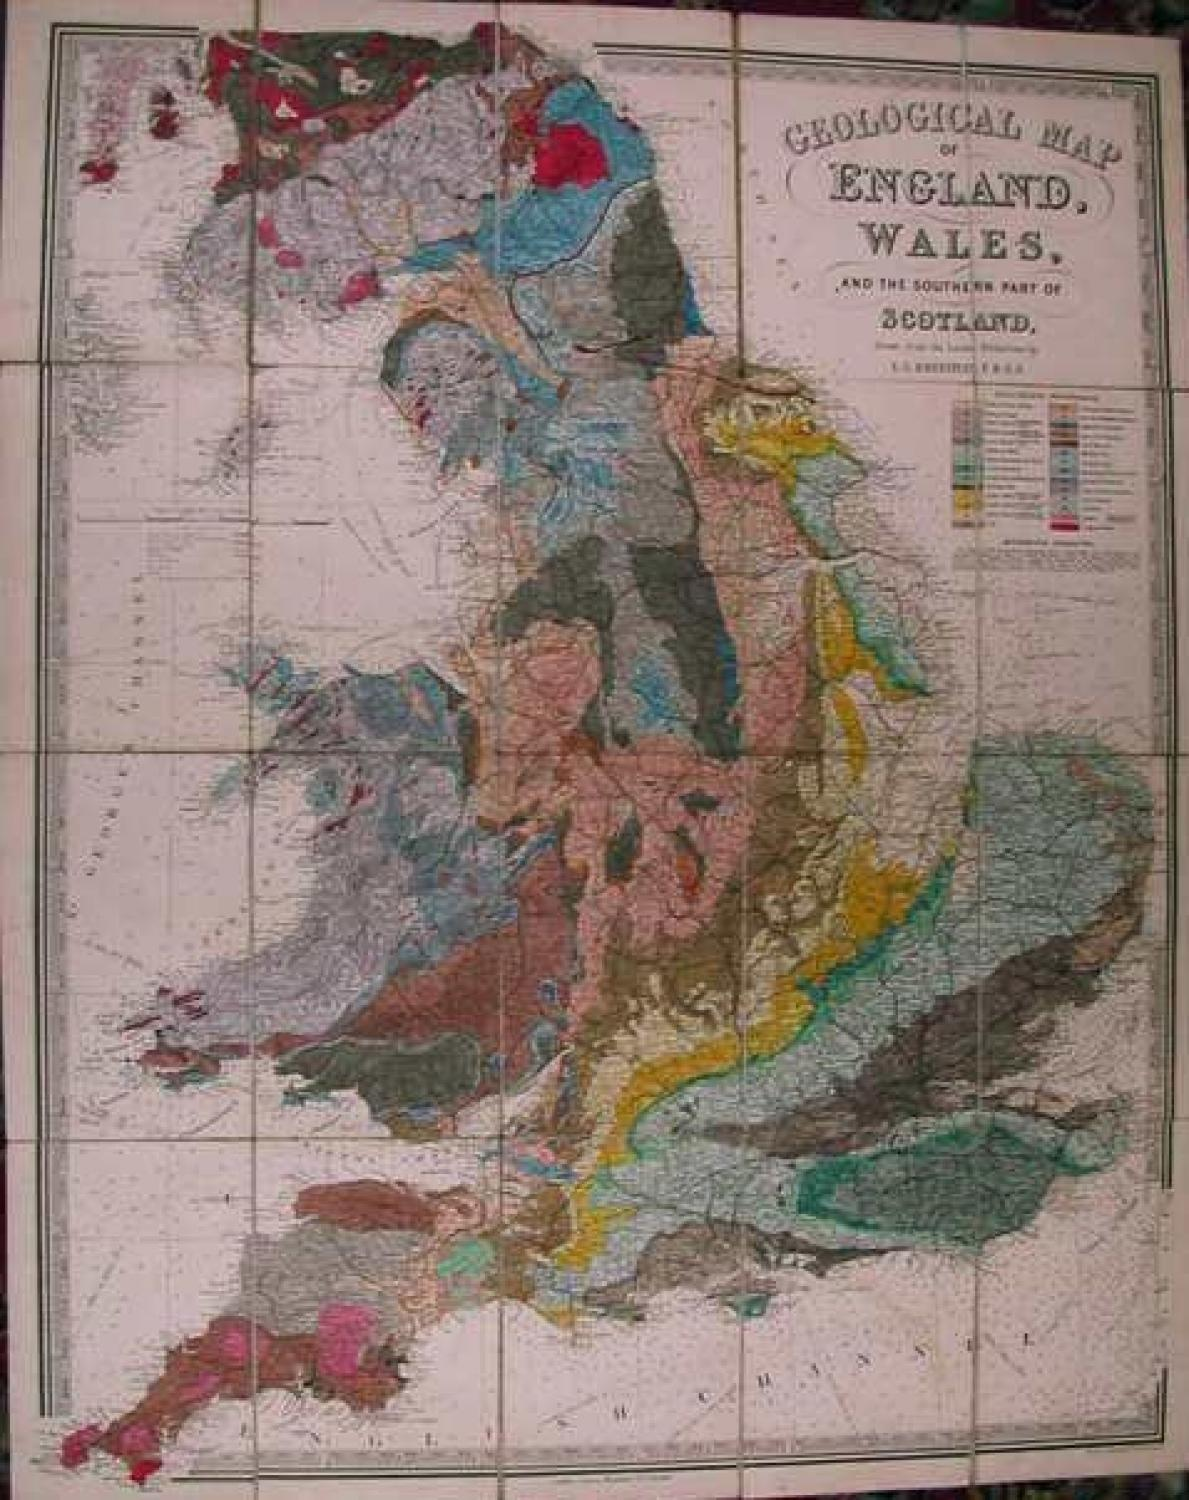 SOLD Geological map of England Wales and the southern part of Scotland